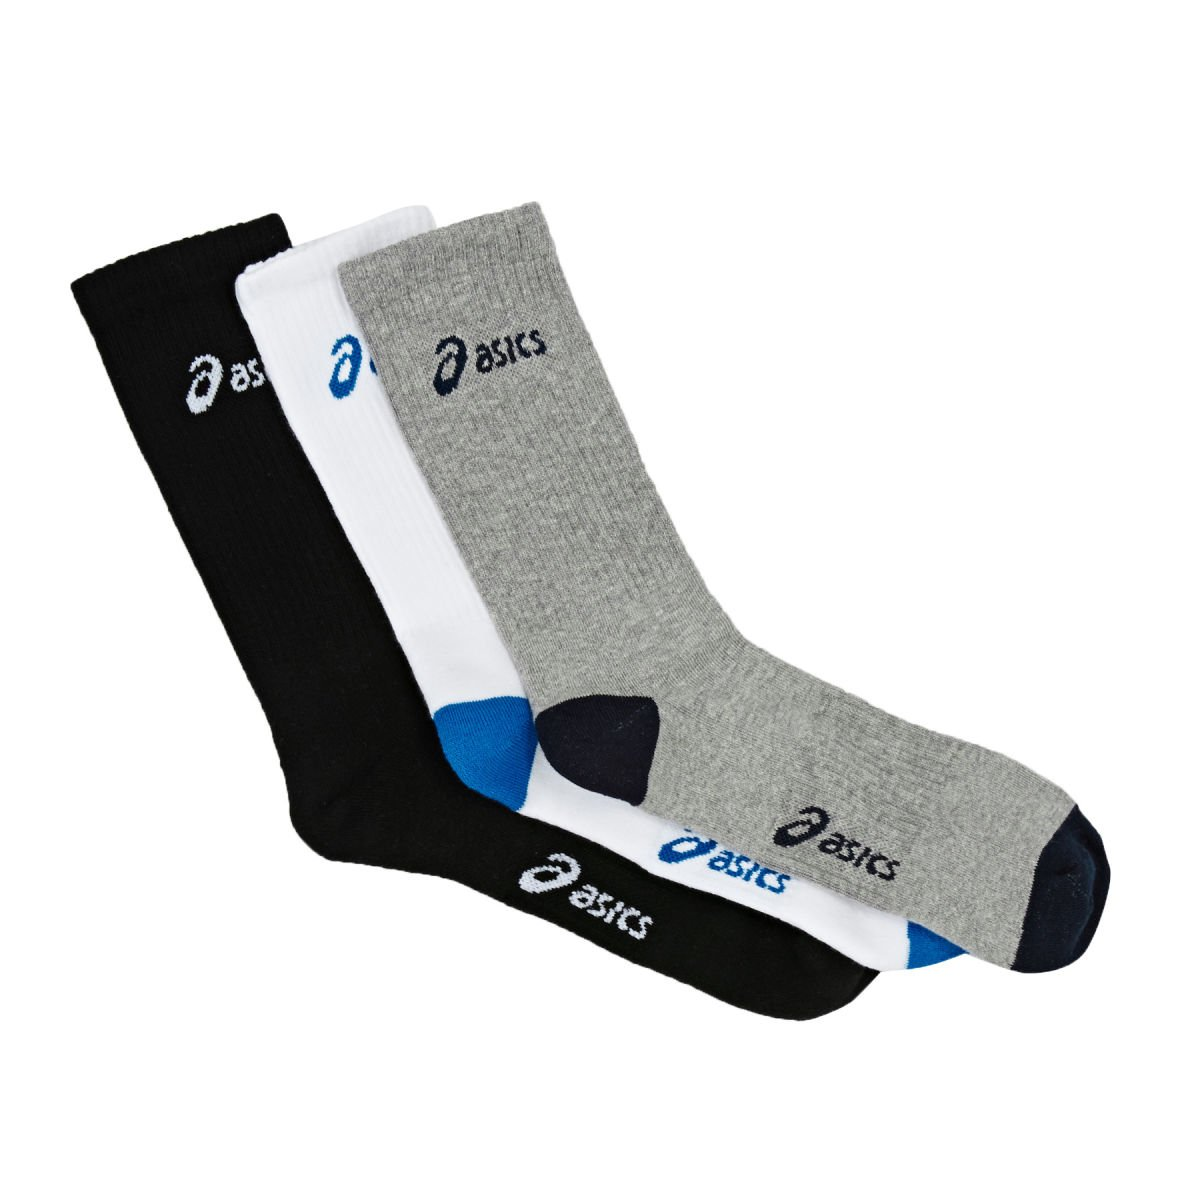 ASICS Mid Height Running Socks - 3 Pack